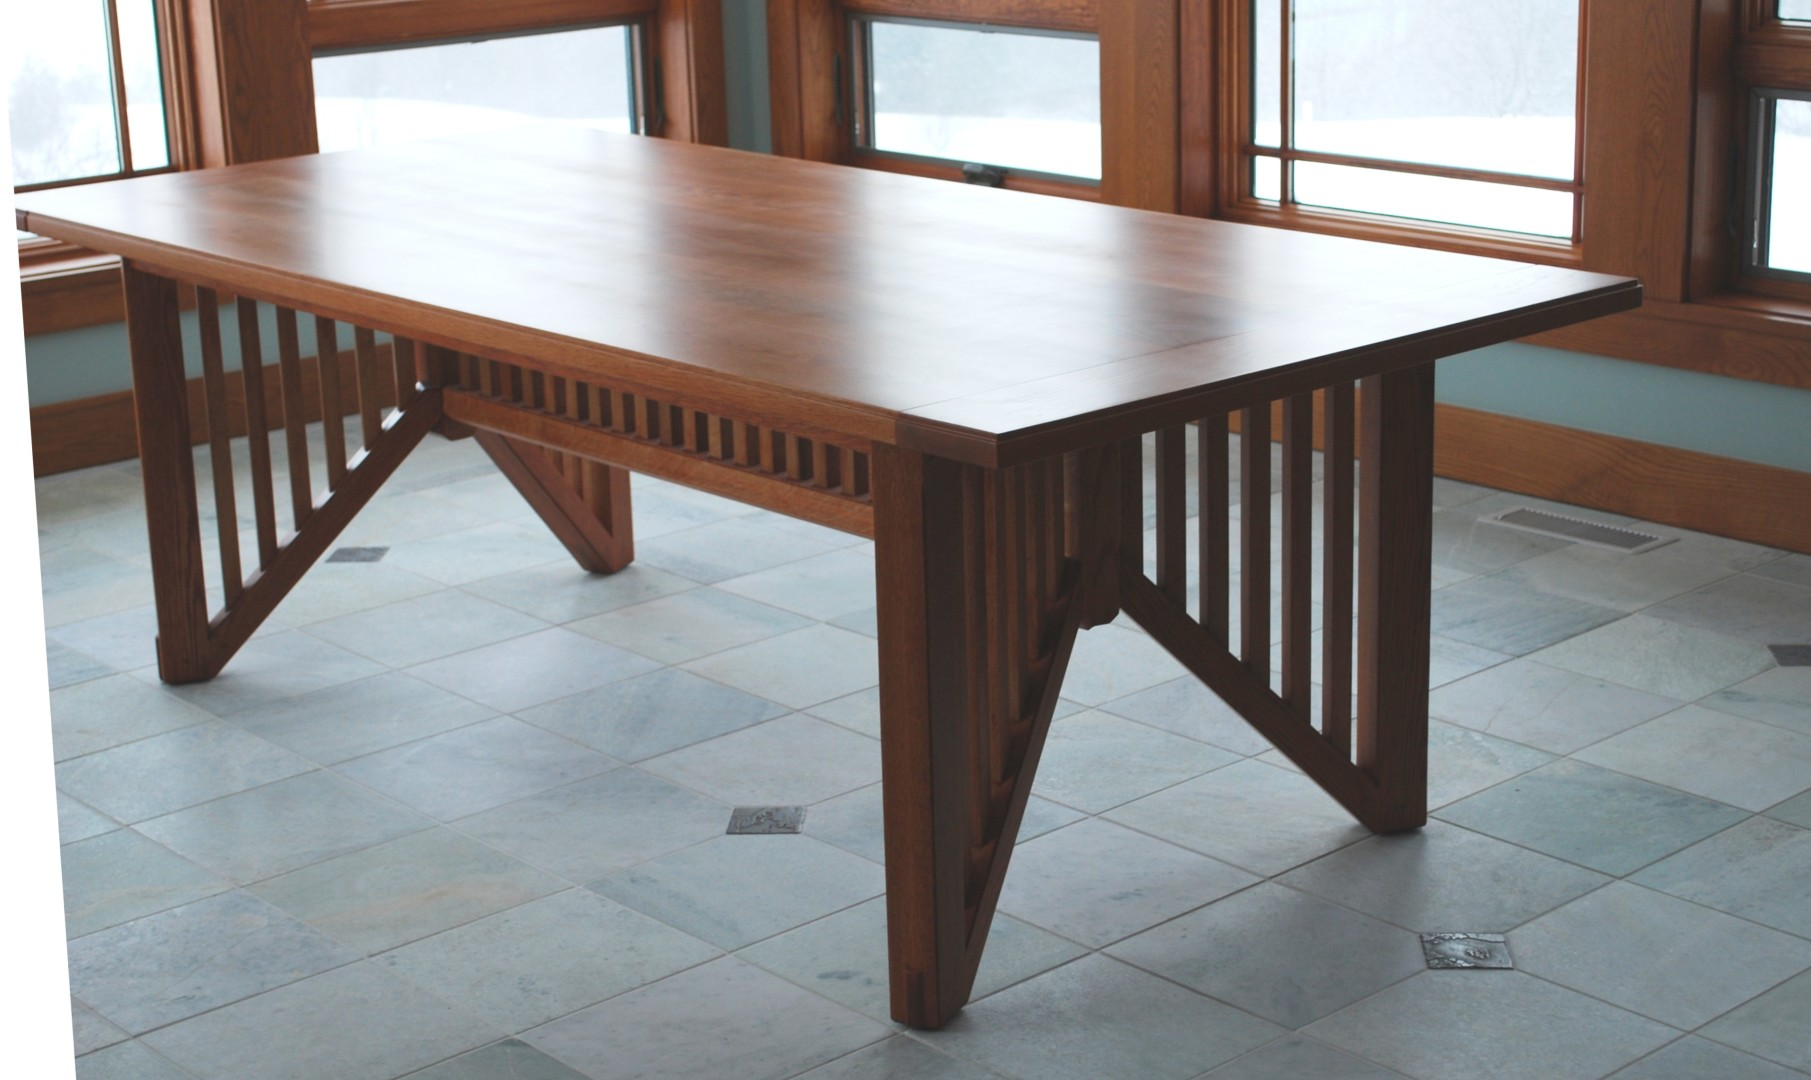 Tables Archives - Chad Womack Design | Fine Furniture & Cabinet Making